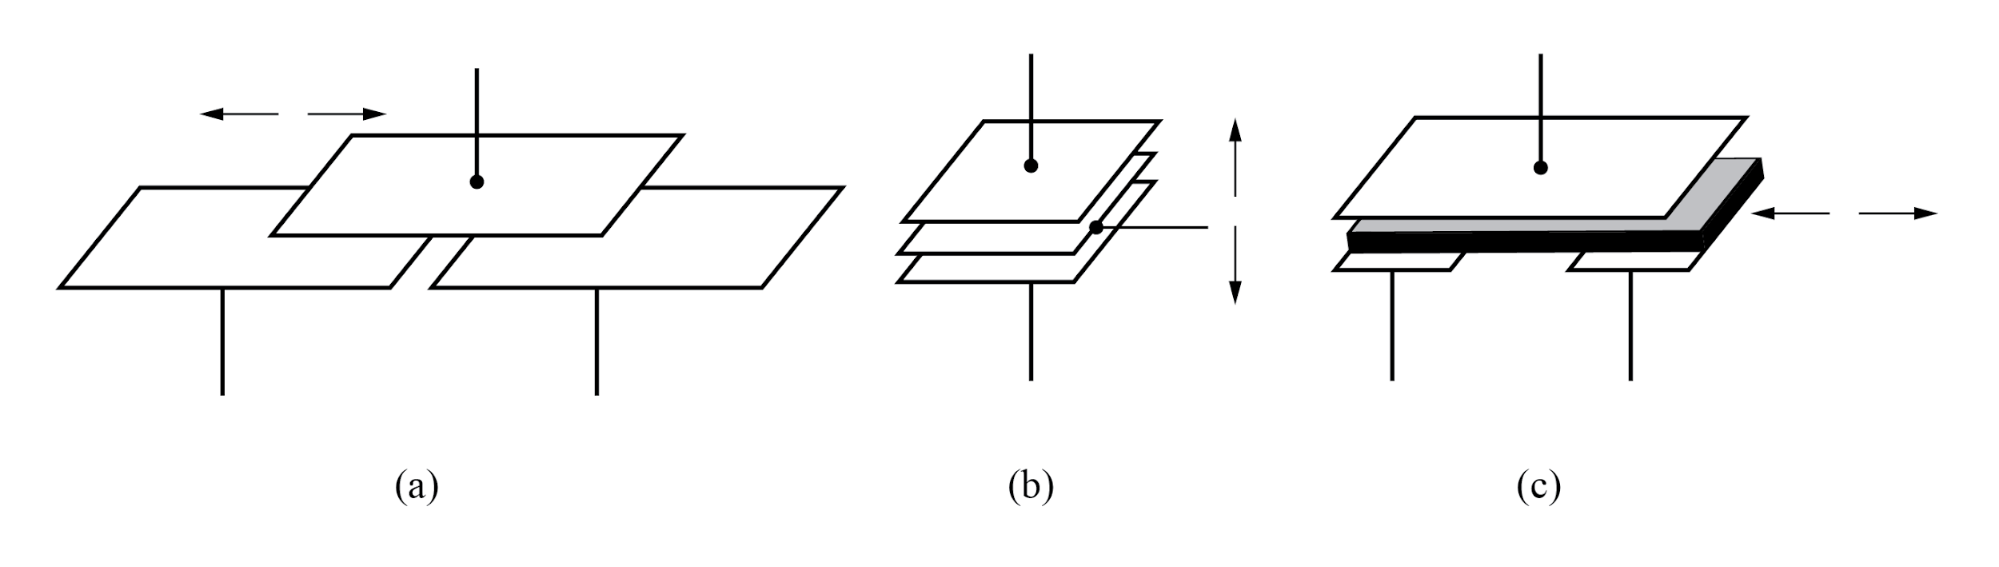 Differential capacitive transducer varies capacitance ratio by changing: (a) area of overlap, (b) distance between plates, (c) dielectric between plates.